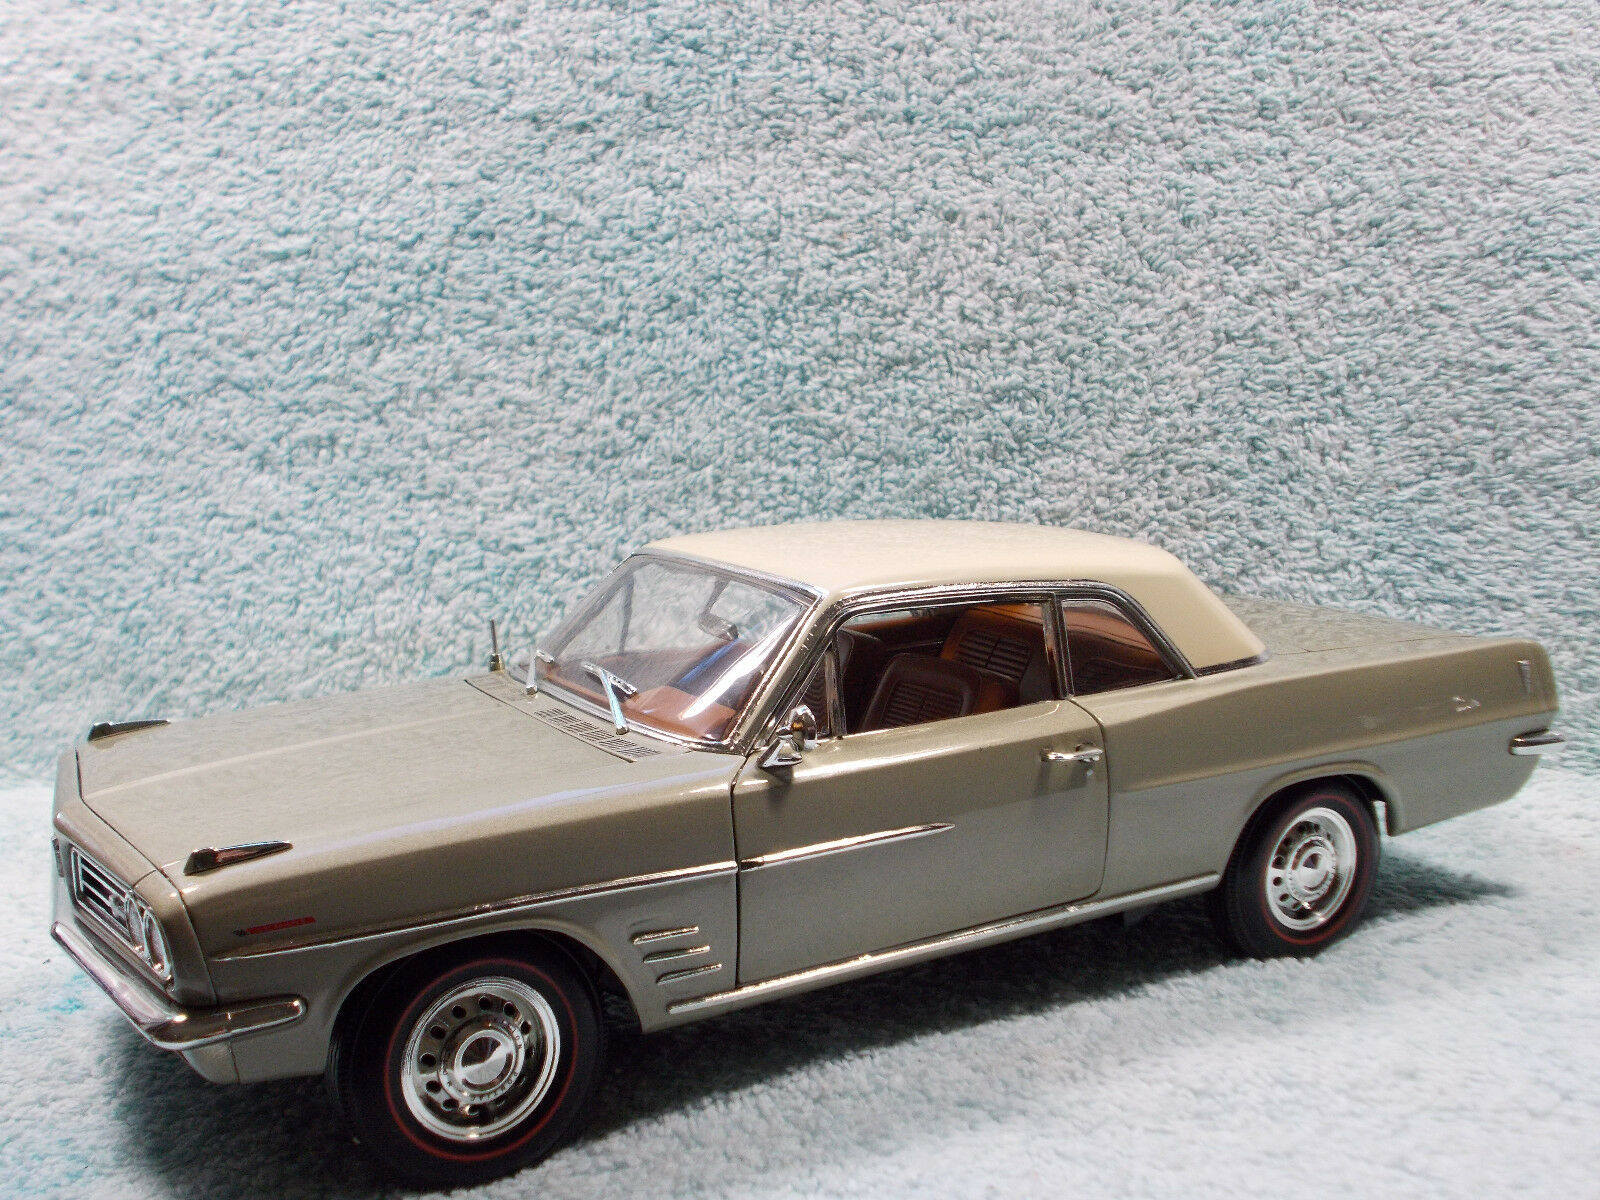 1 18 DIECAST 1963 PONTIAC LEMANS HARDTOP IN METALLIC LIME GREEN BY HIGH WAY 61.